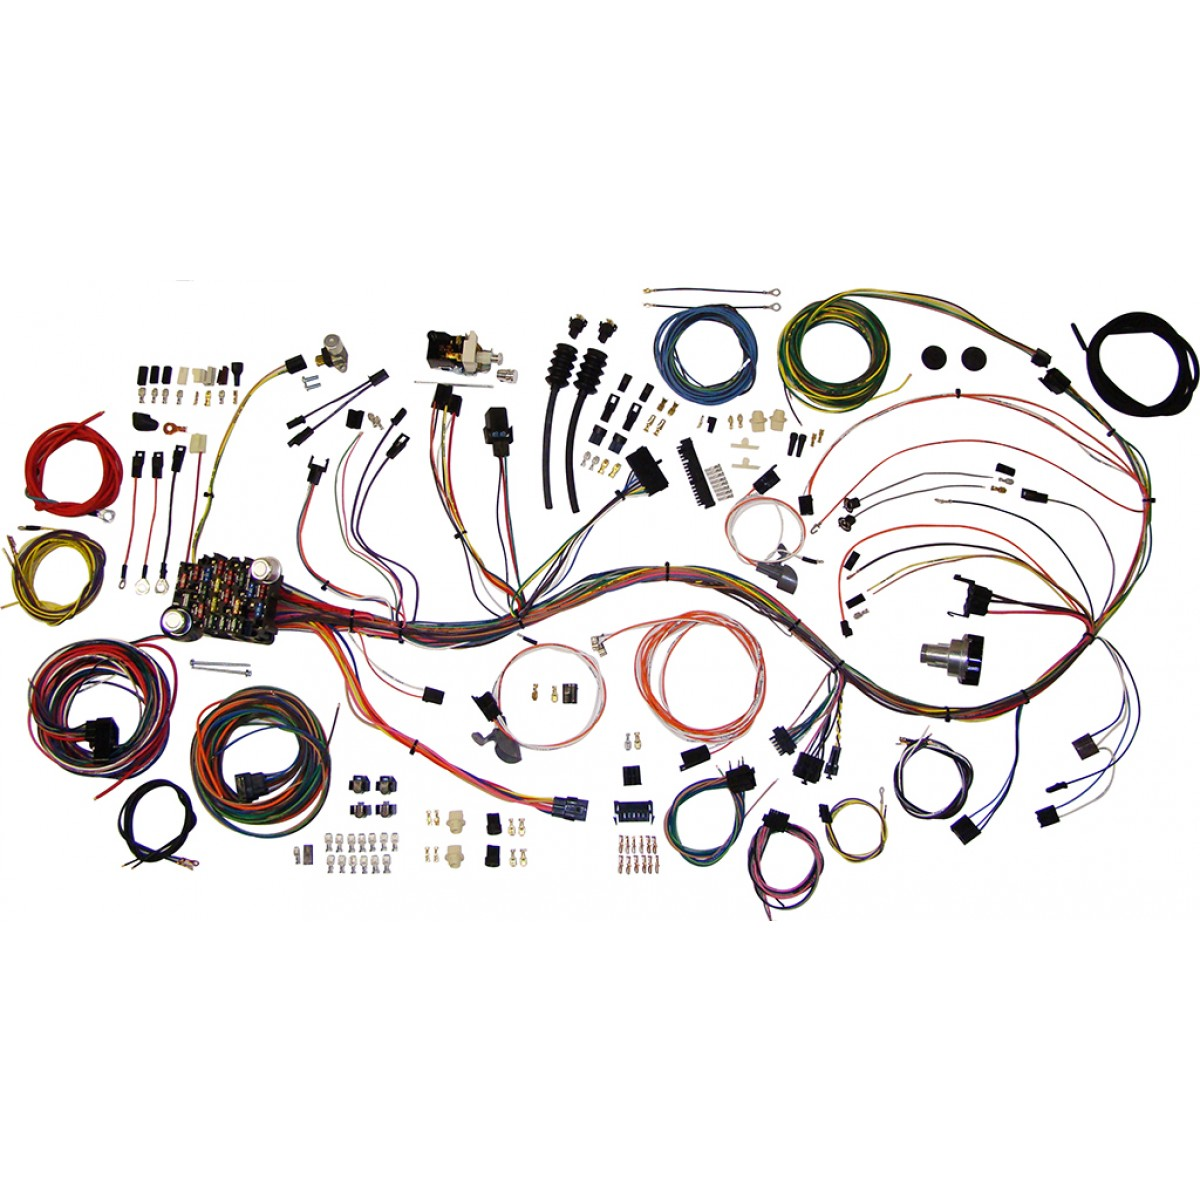 chevy c10 wiring harness complete wiring harness kit 1969 1972 rh code510  com 68 Chevy Truck